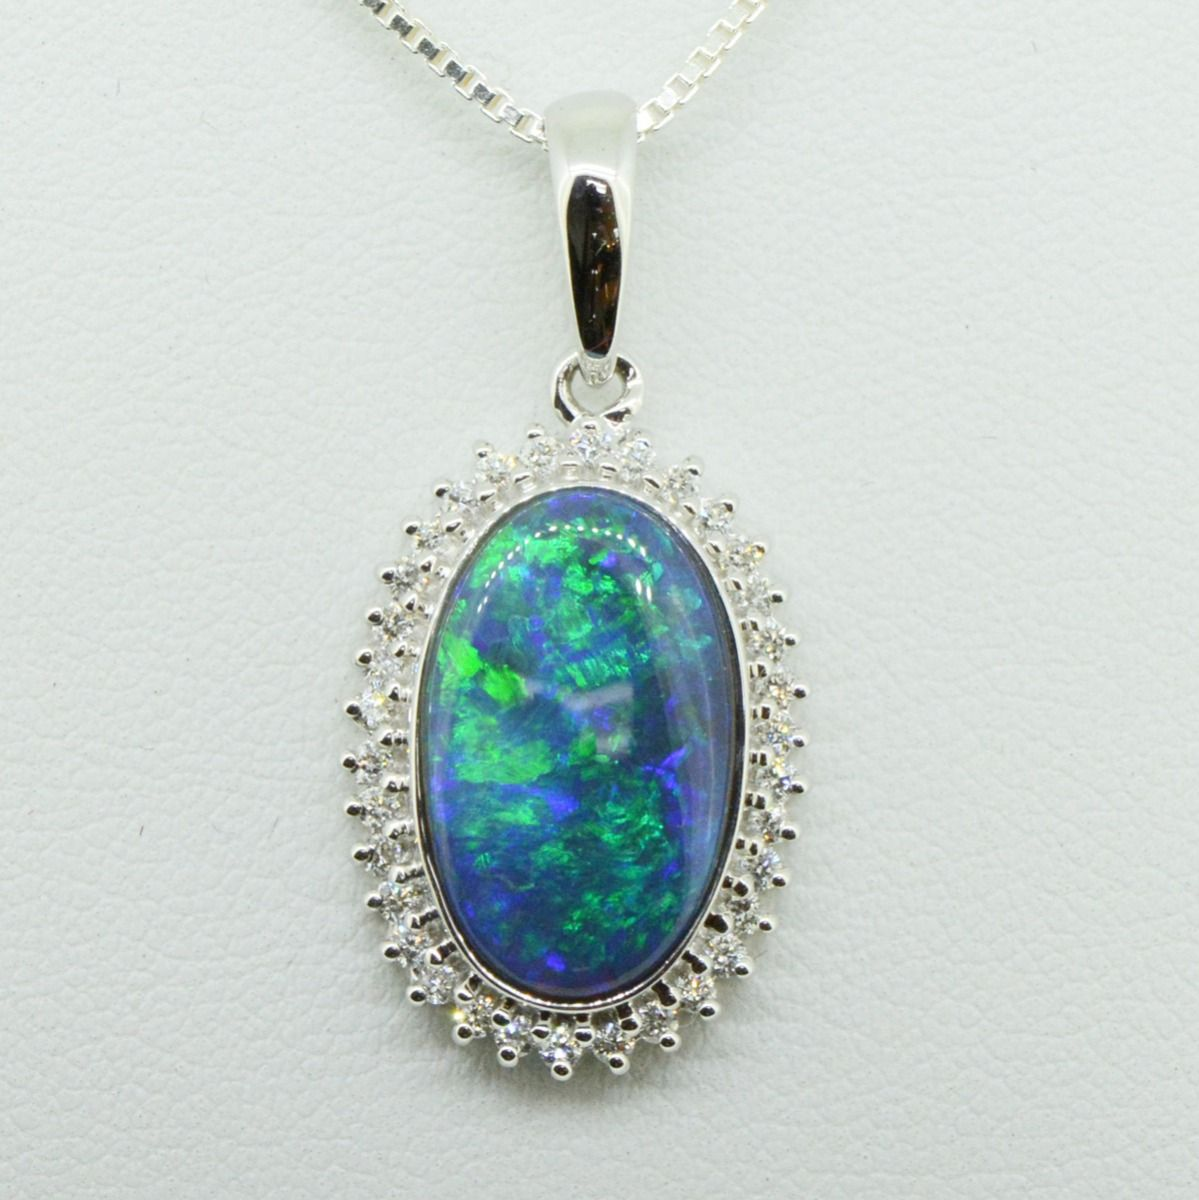 18ct White Gold Diamond Cluster Black Opal Pendant